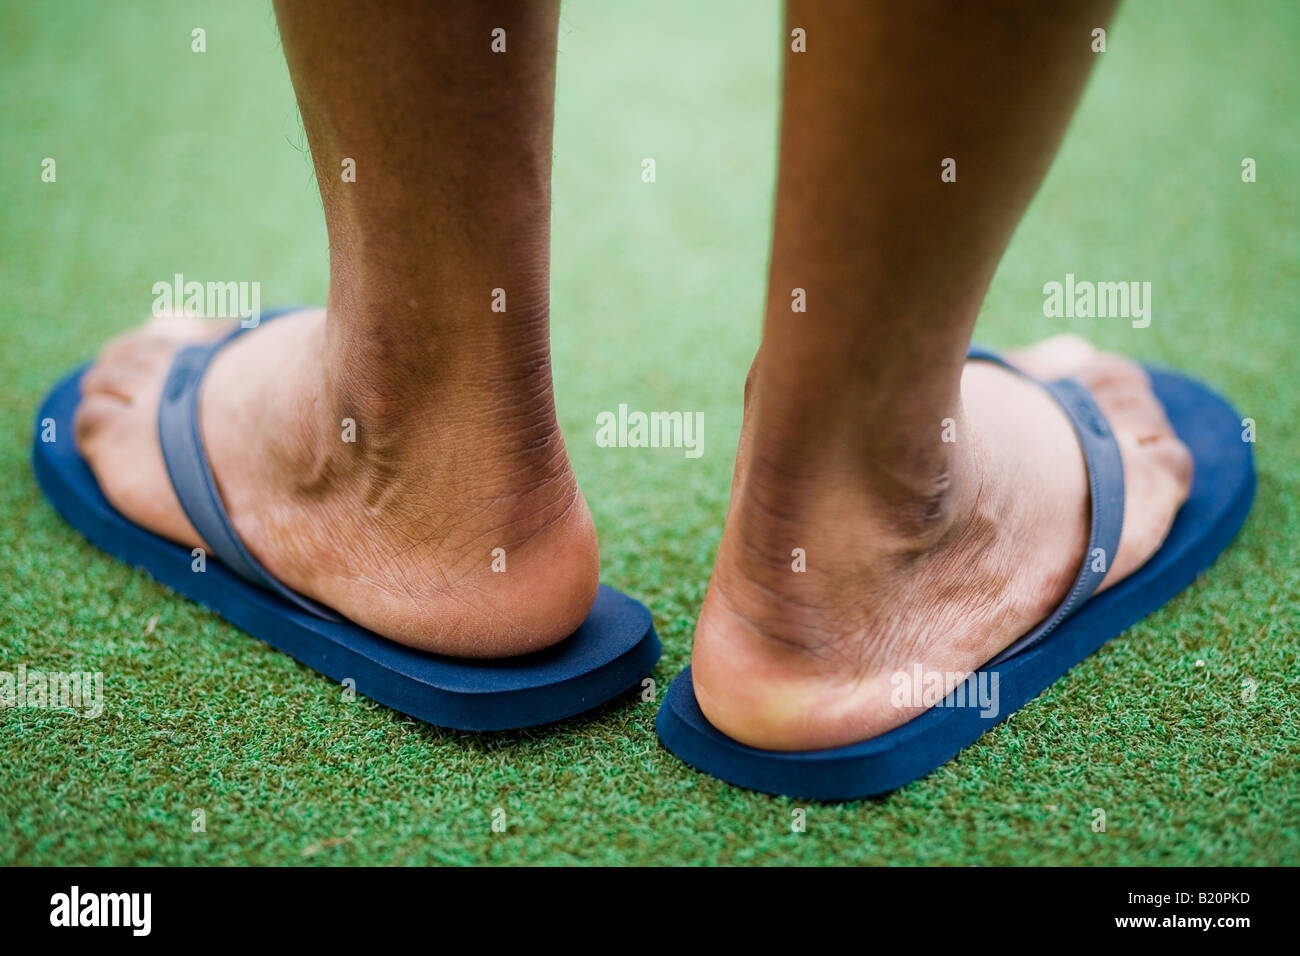 Back of man's feet wearing blue flip flops - Stock Image